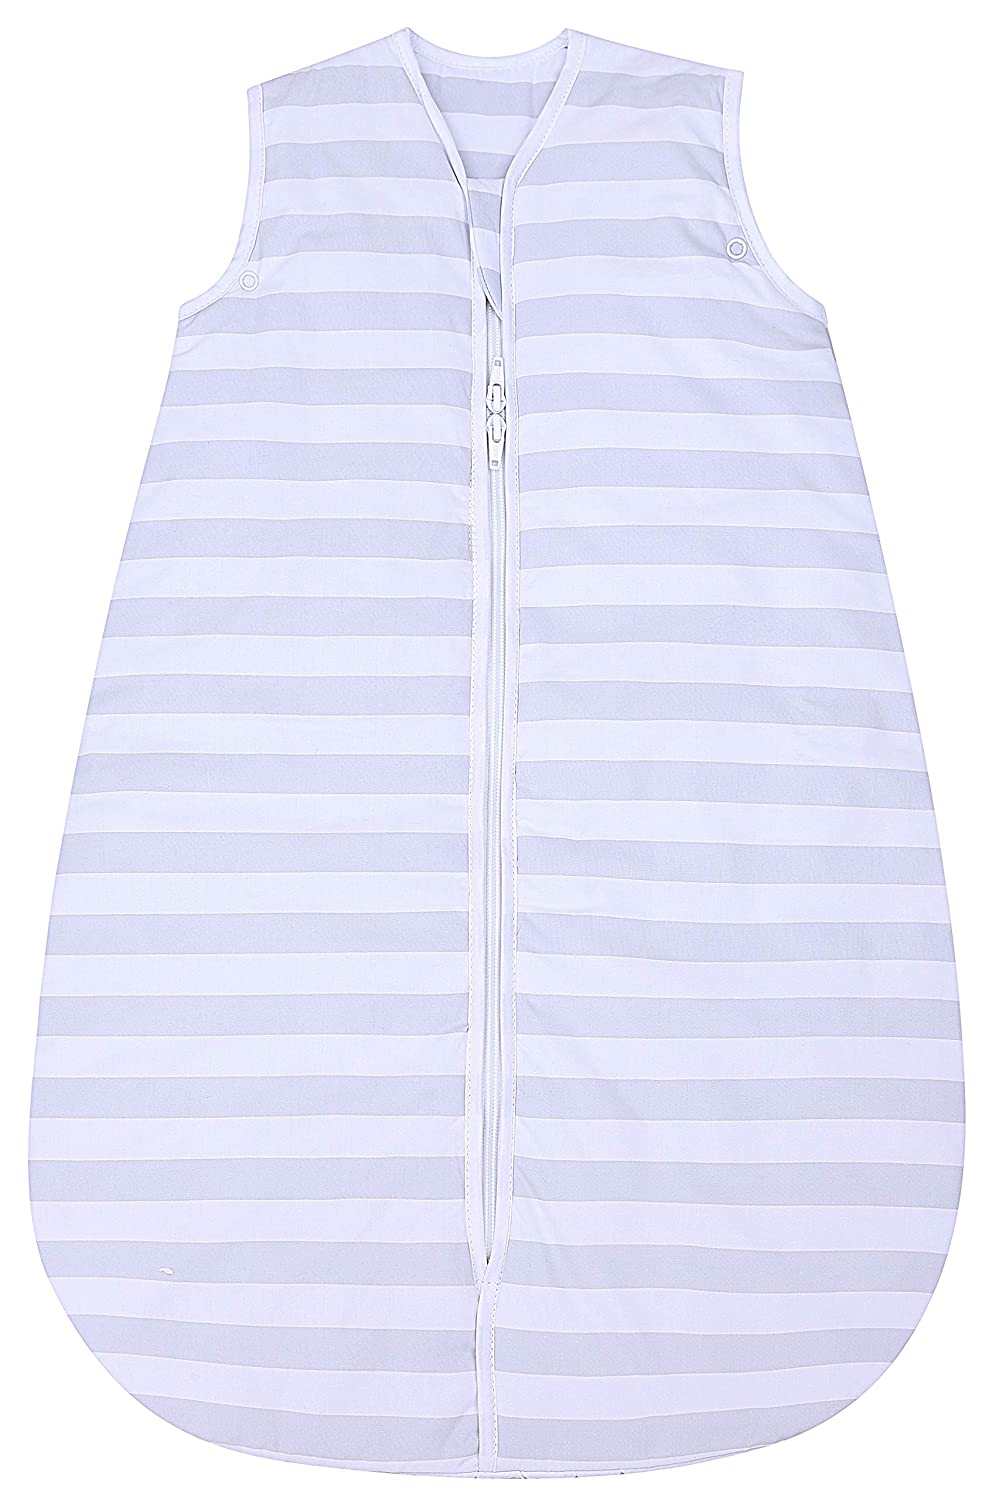 Snoozebag Baby Sleeping Bags Twin Pack Summer 0.5 6-18 Months Grey Stripe Designs 100/% Cotton Unisex Toddler Nursery Multi-Coloured Front Zip 2 Pack 1.0 Multi Tog Buy Beaches /& Boats